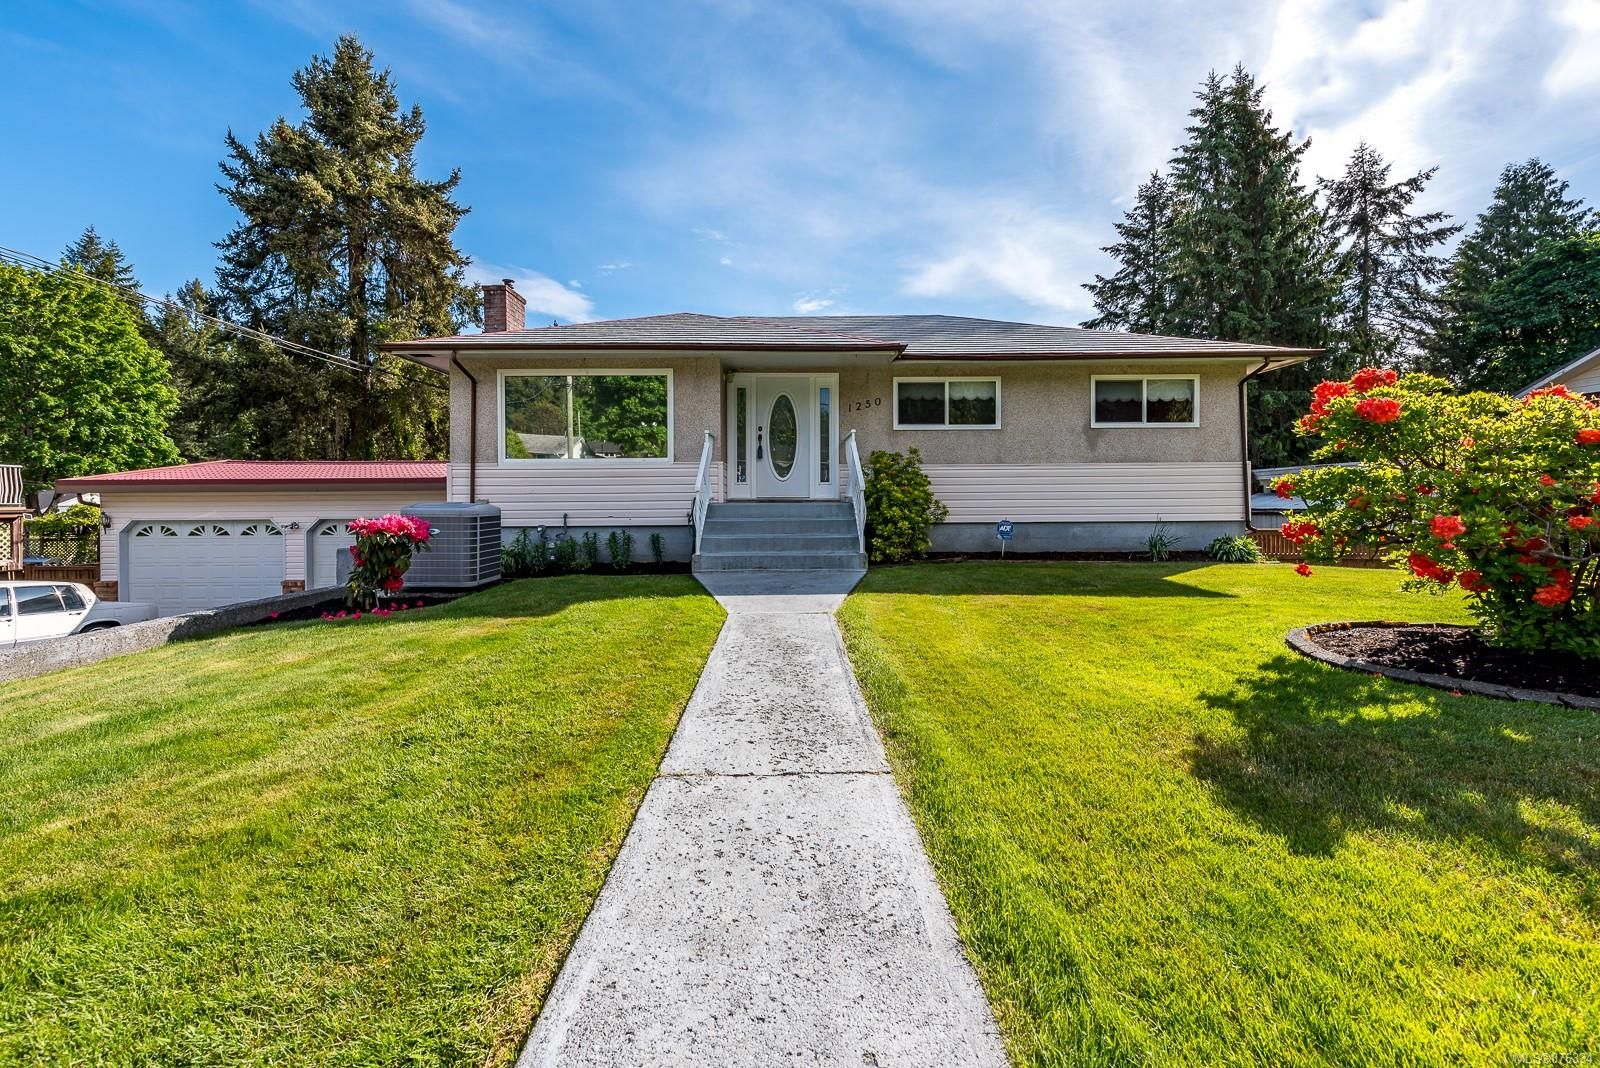 Main Photo: 1250 Webdon Rd in : CV Courtenay West House for sale (Comox Valley)  : MLS®# 876334